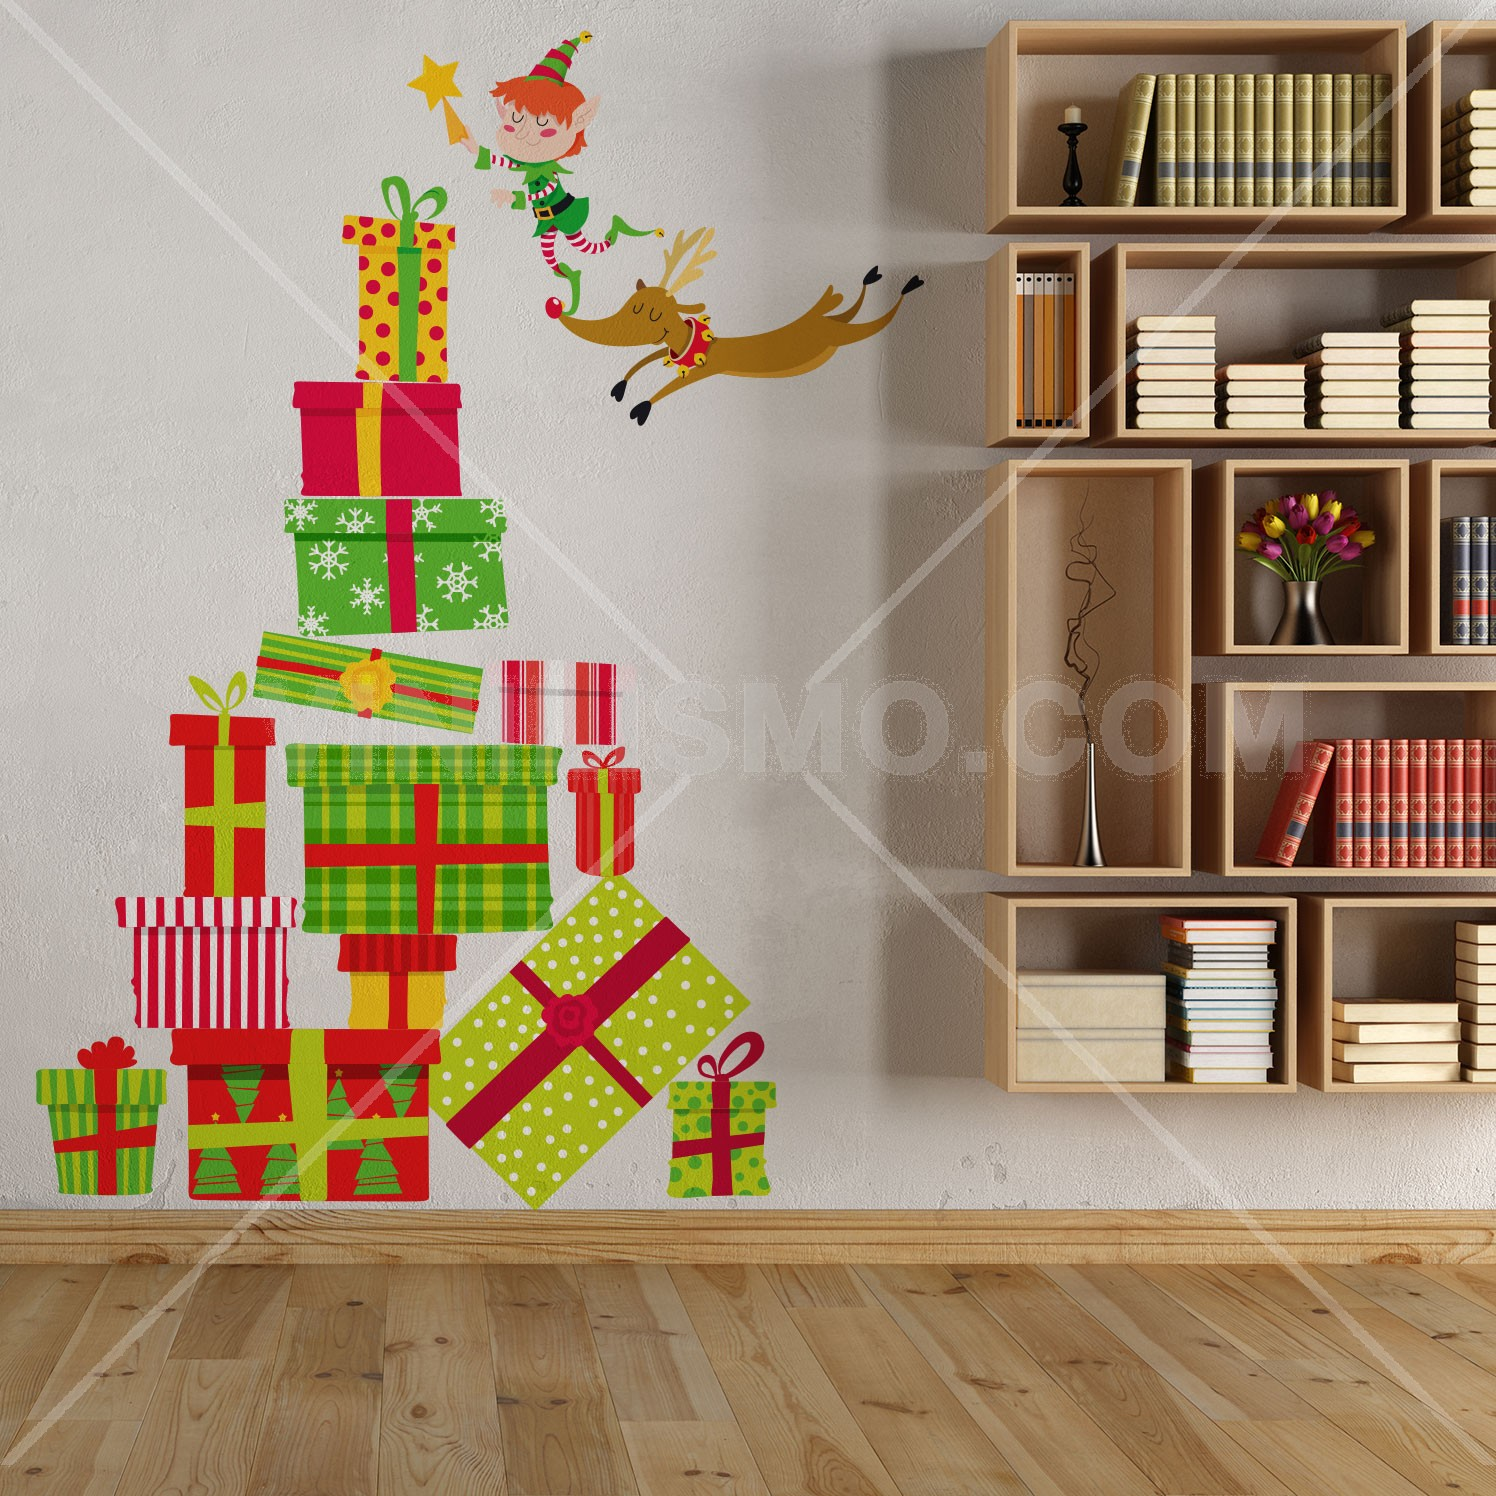 Vinilo decorativo rbol navide o for Papel para forrar puertas